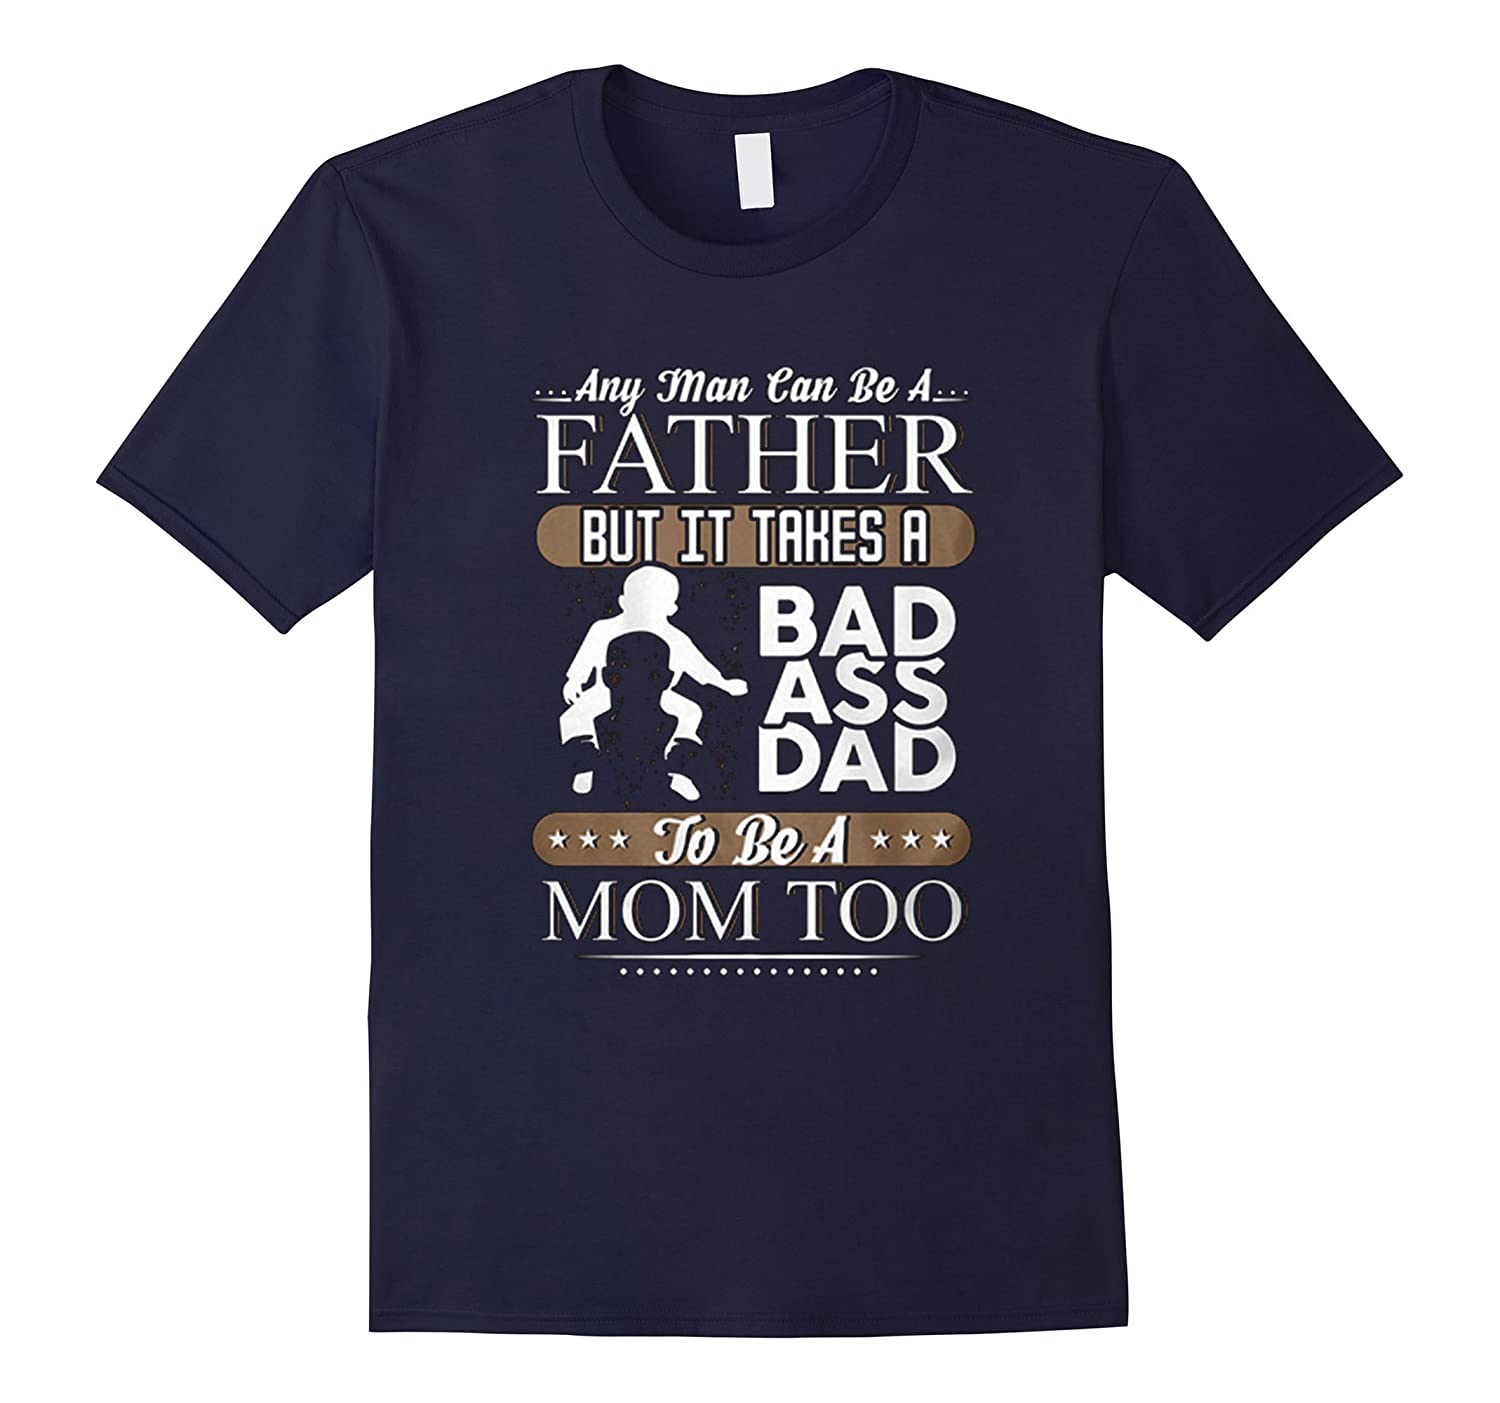 Any man can be a father but it takes a badass dad to be a mo-TH